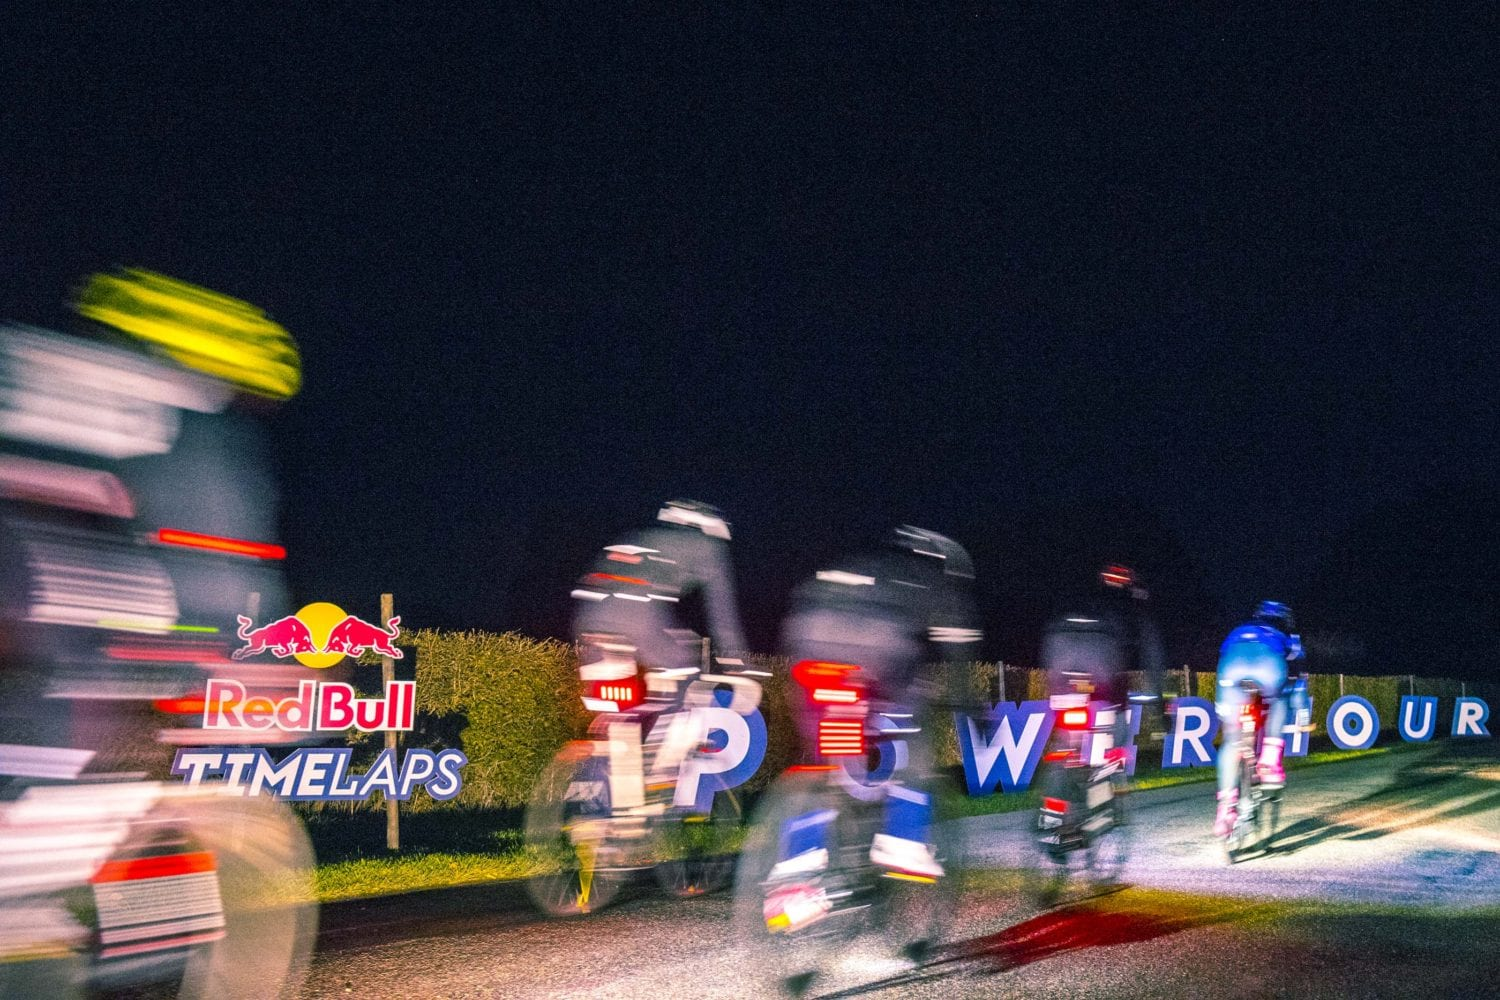 Red Bull Timelaps sees 800 riders battle round the clock